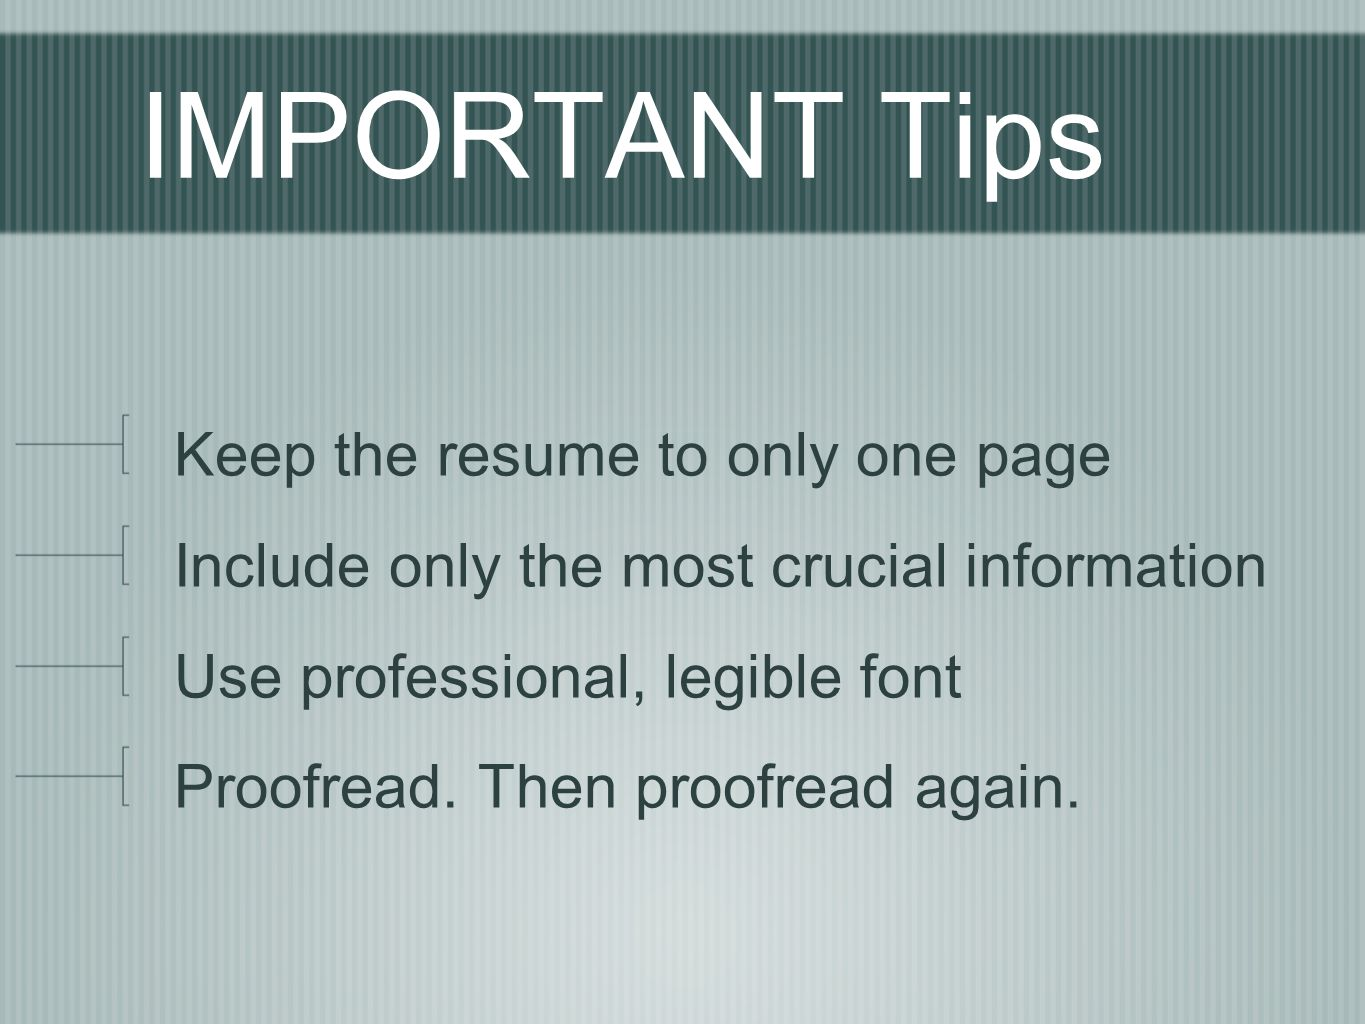 IMPORTANT Tips Keep the resume to only one page Include only the most crucial information Use professional, legible font Proofread. Then proofread aga